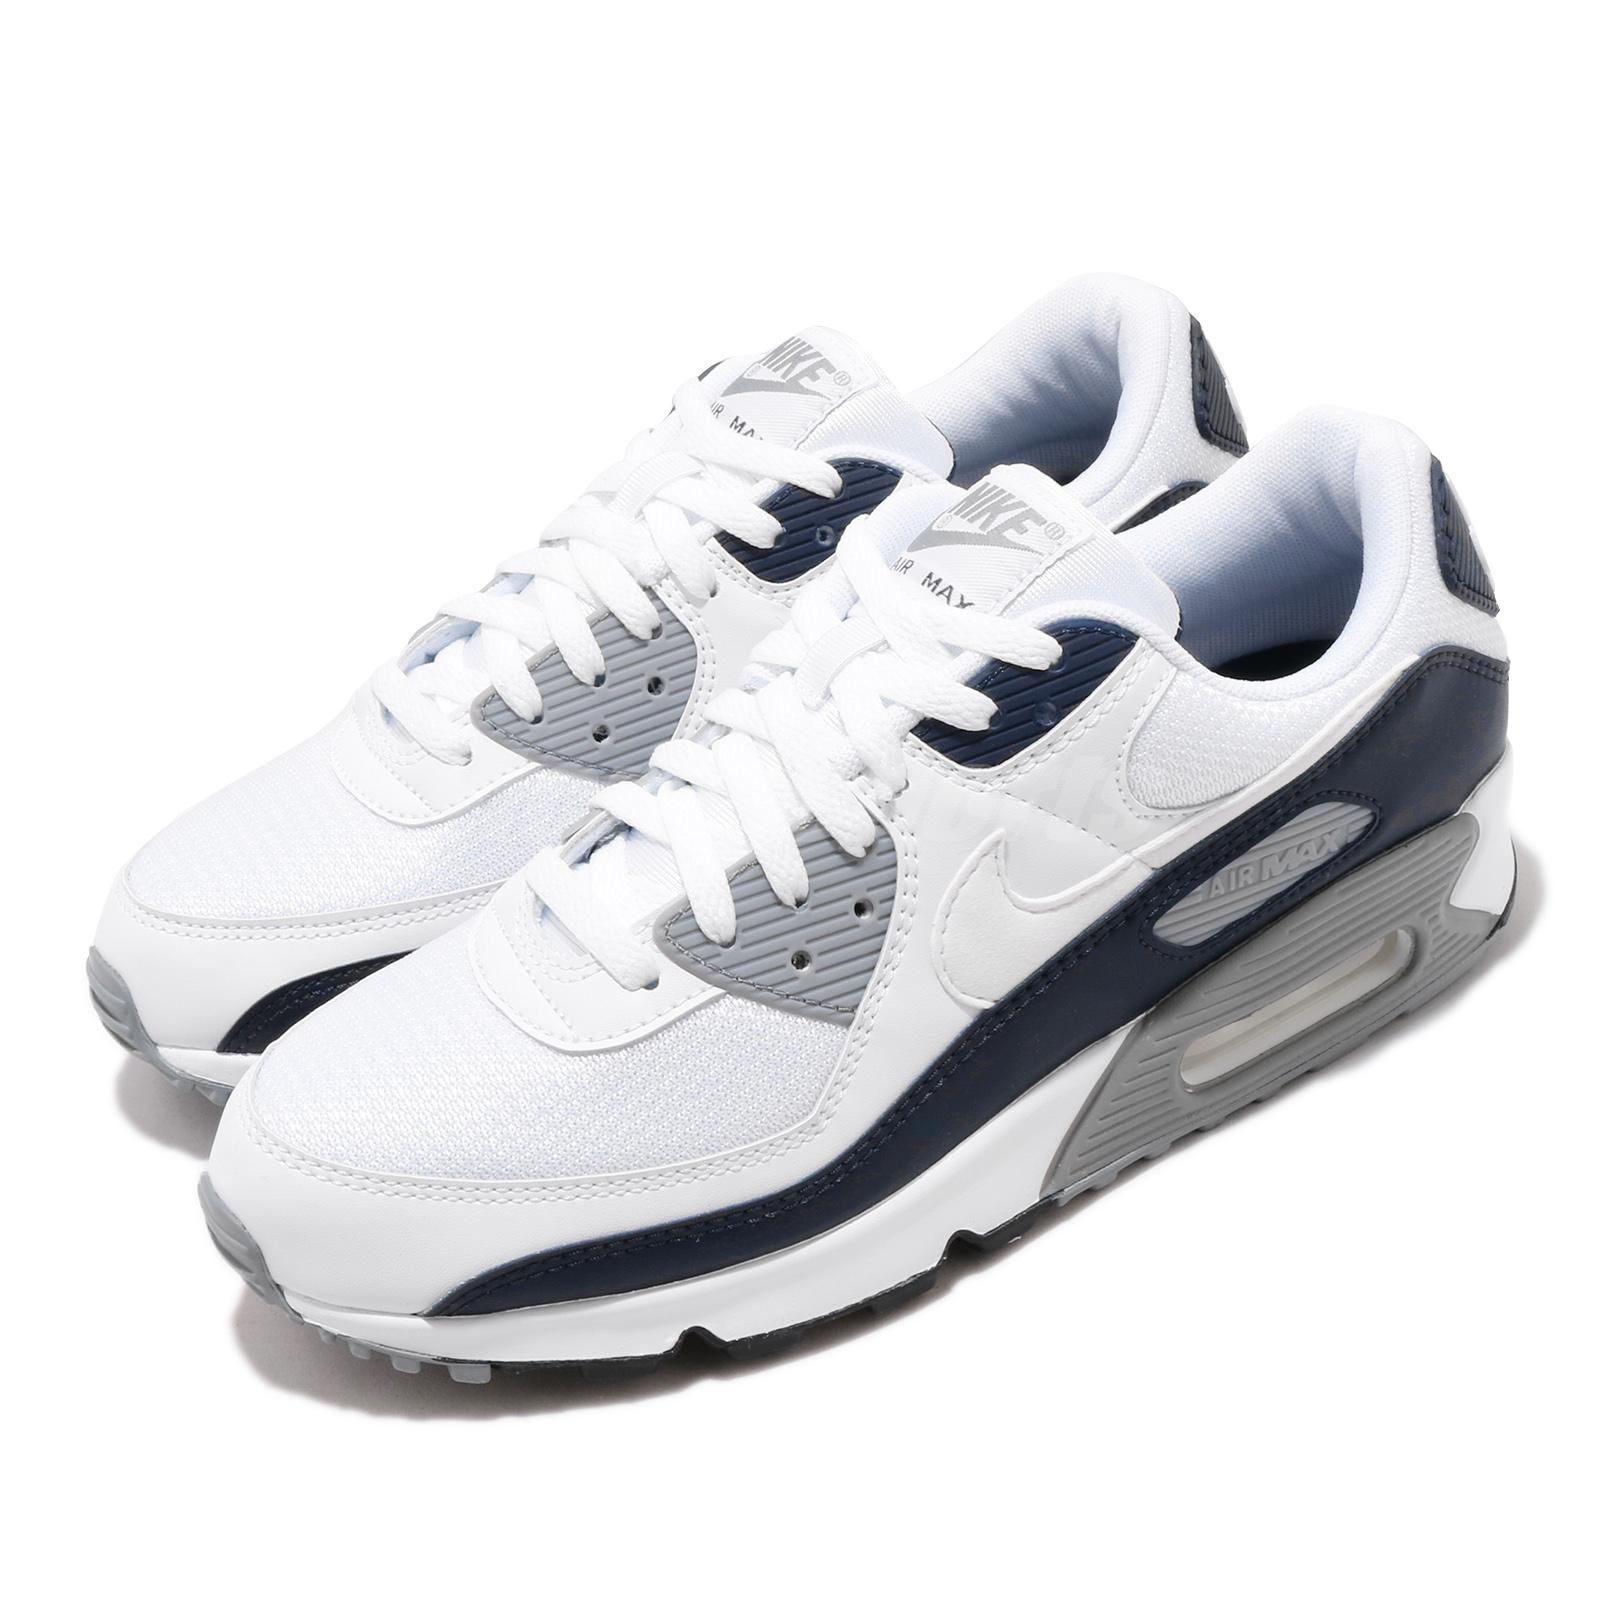 Nike Air Max 90 Nsw White Grey Navy Men Lifestyle Shoes Sneakers